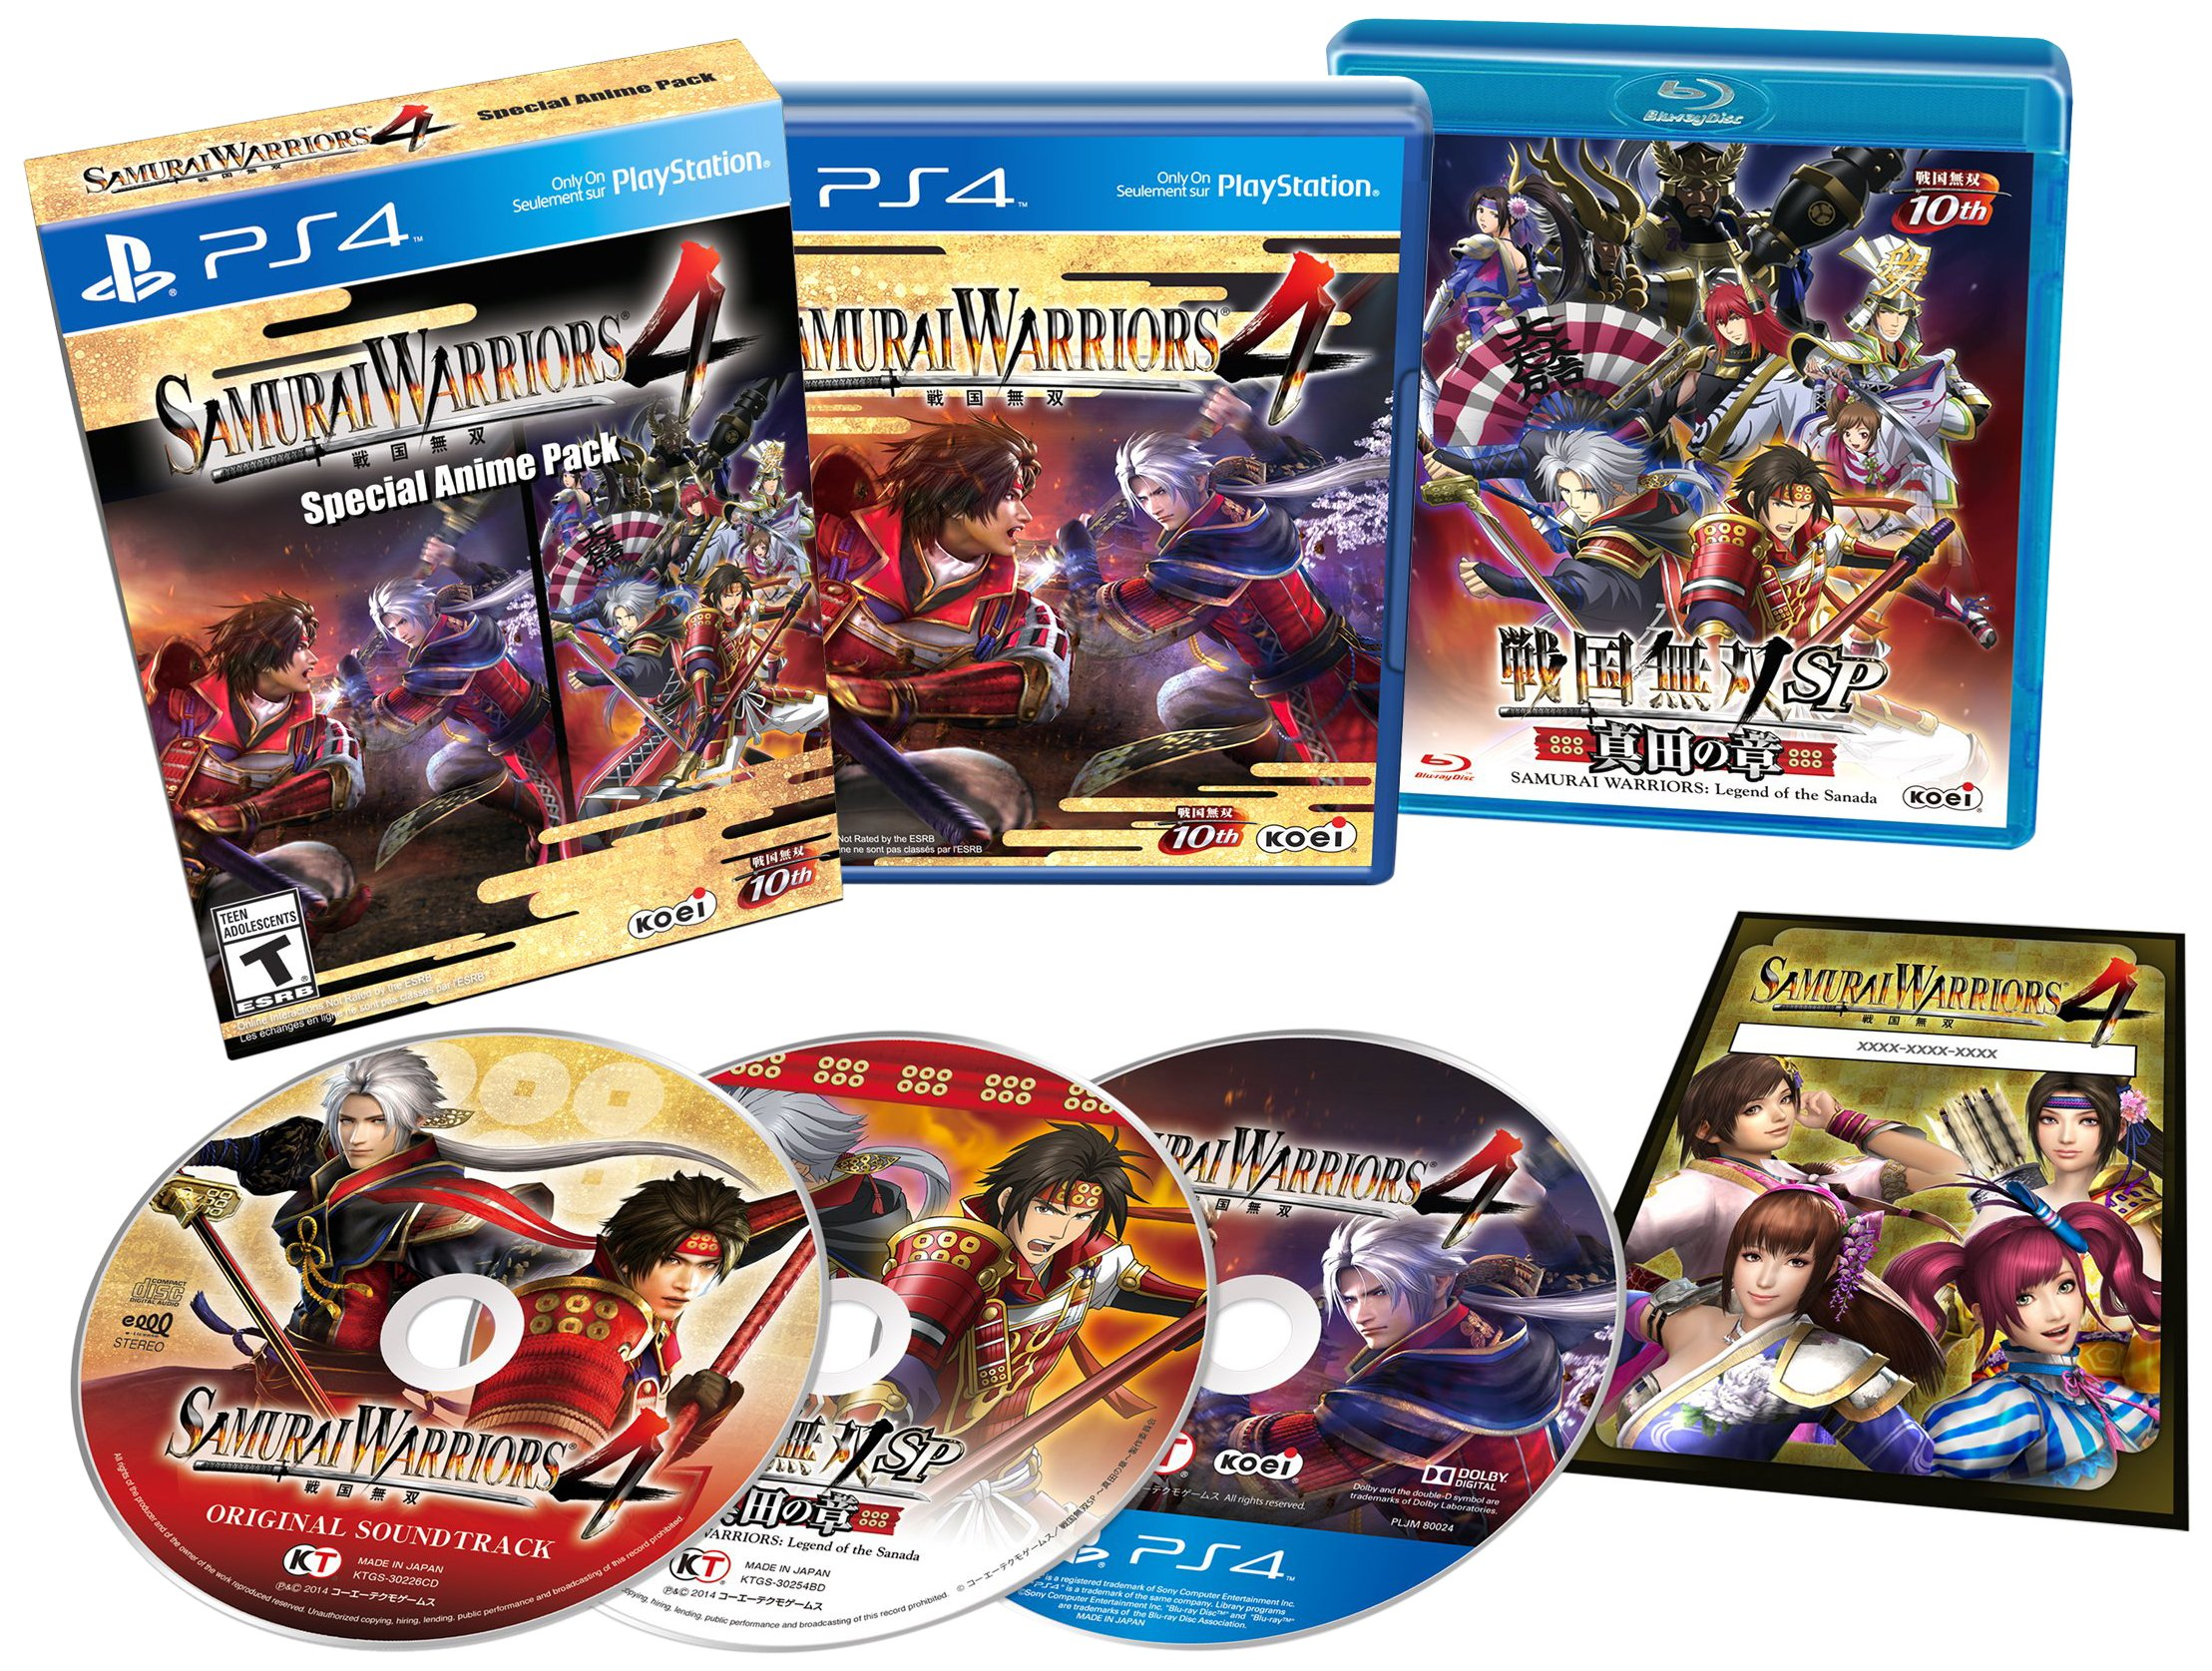 SAMURAI WARRIORS 4: Special Anime Pack Release Date (PS4)